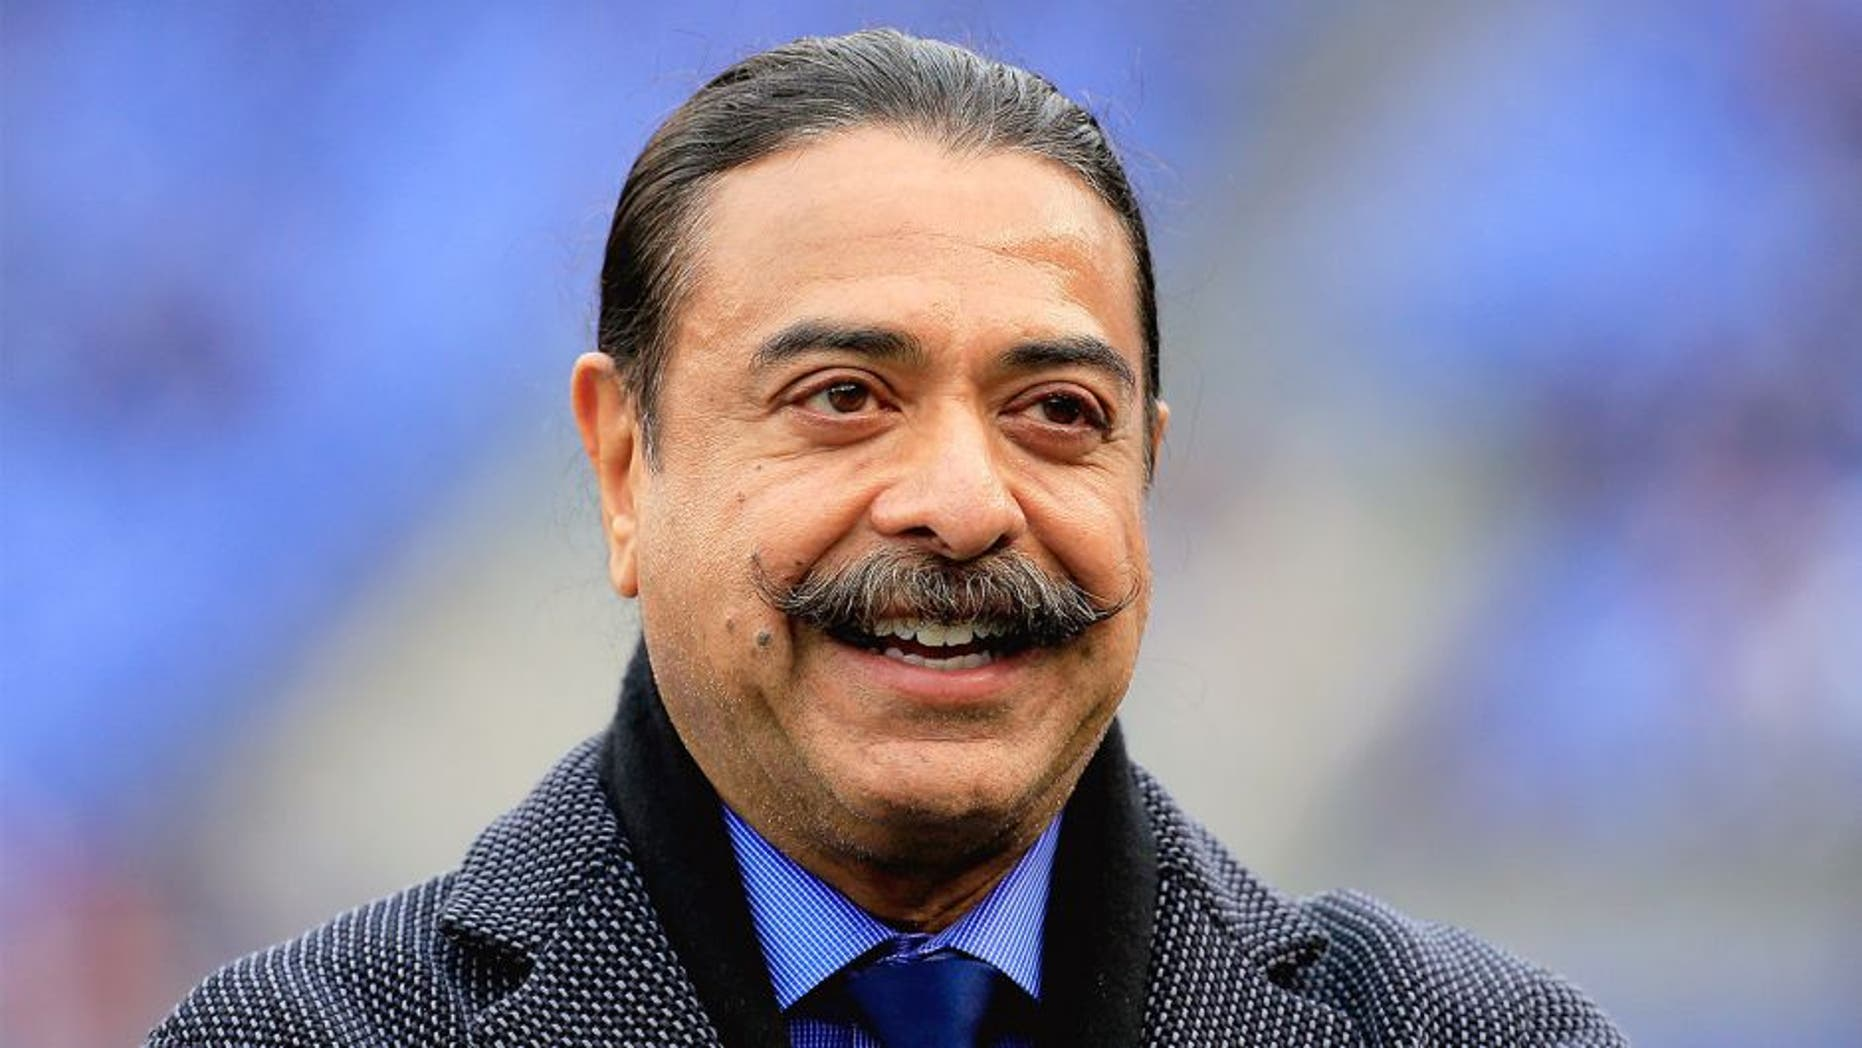 BALTIMORE, MD - DECEMBER 14: Jacksonville Jaguars owner Shahid Khan looks on before a game against the Baltimore Ravens at M&T Bank Stadium on December 14, 2014 in Baltimore, Maryland. (Photo by Rob Carr/Getty Images)